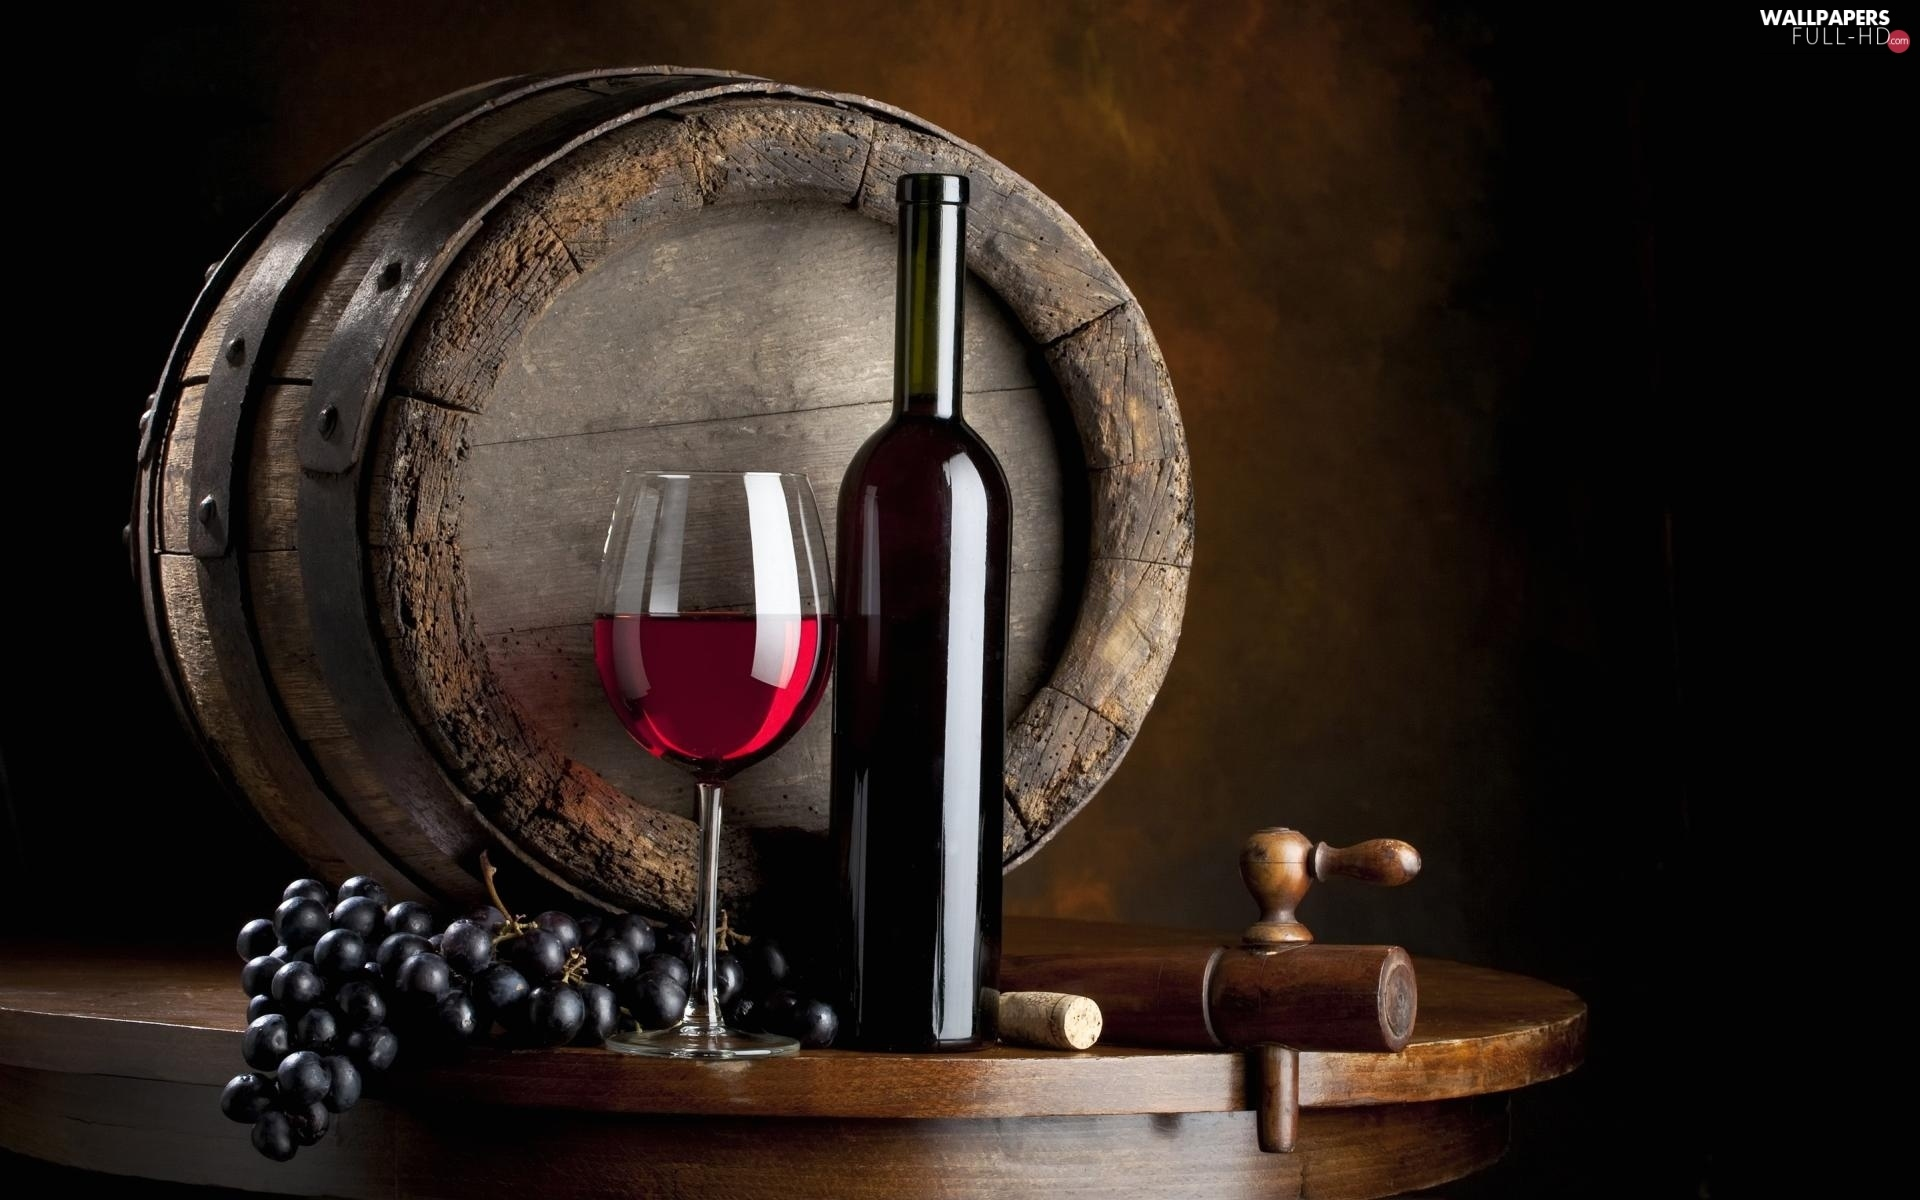 barrel, Bottle, glass, Red, grape, Wine